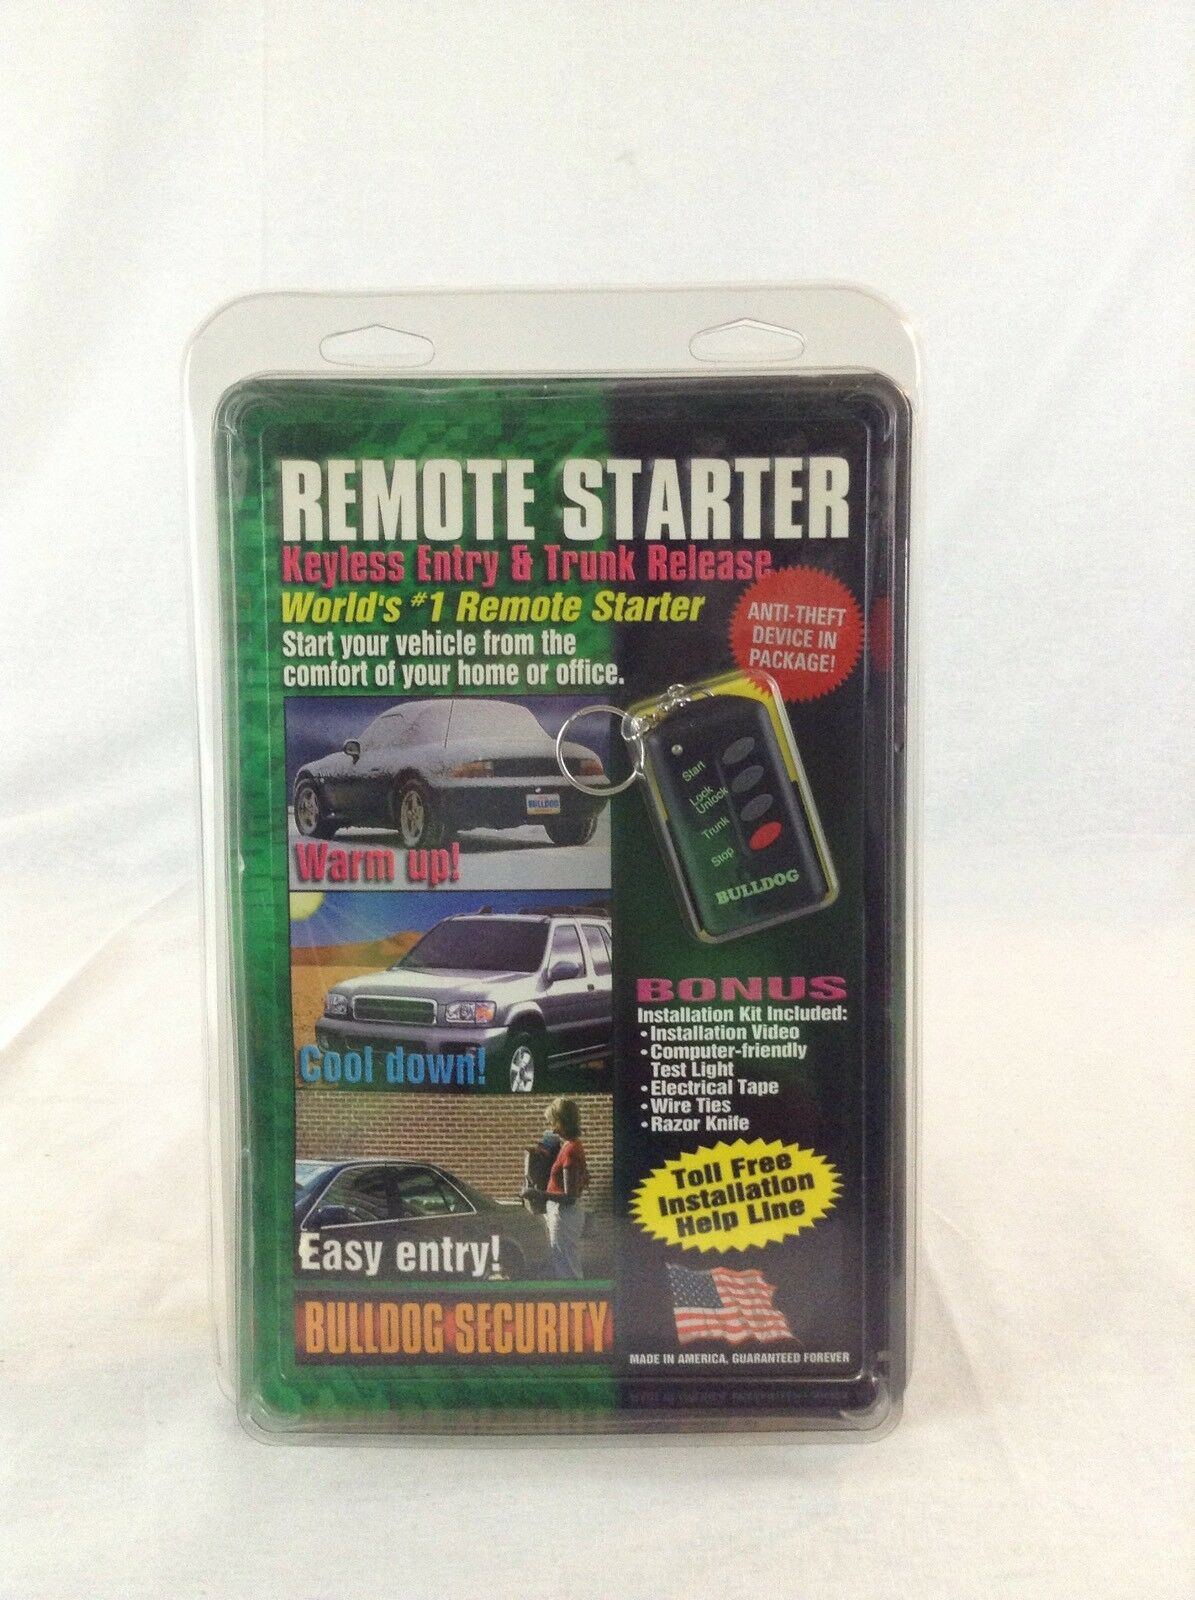 Cool Compustar Remote Start Installation Manual Huge How To Install A Remote Car Starter Video Clean How To Install A Remote Start Alarm Hss Guitar Wiring Young 5 Way Switch 2 Humbuckers BlueSolar Power Connection Diagram Remote Control Car Starter Bulldog Security Model RS102 | EBay